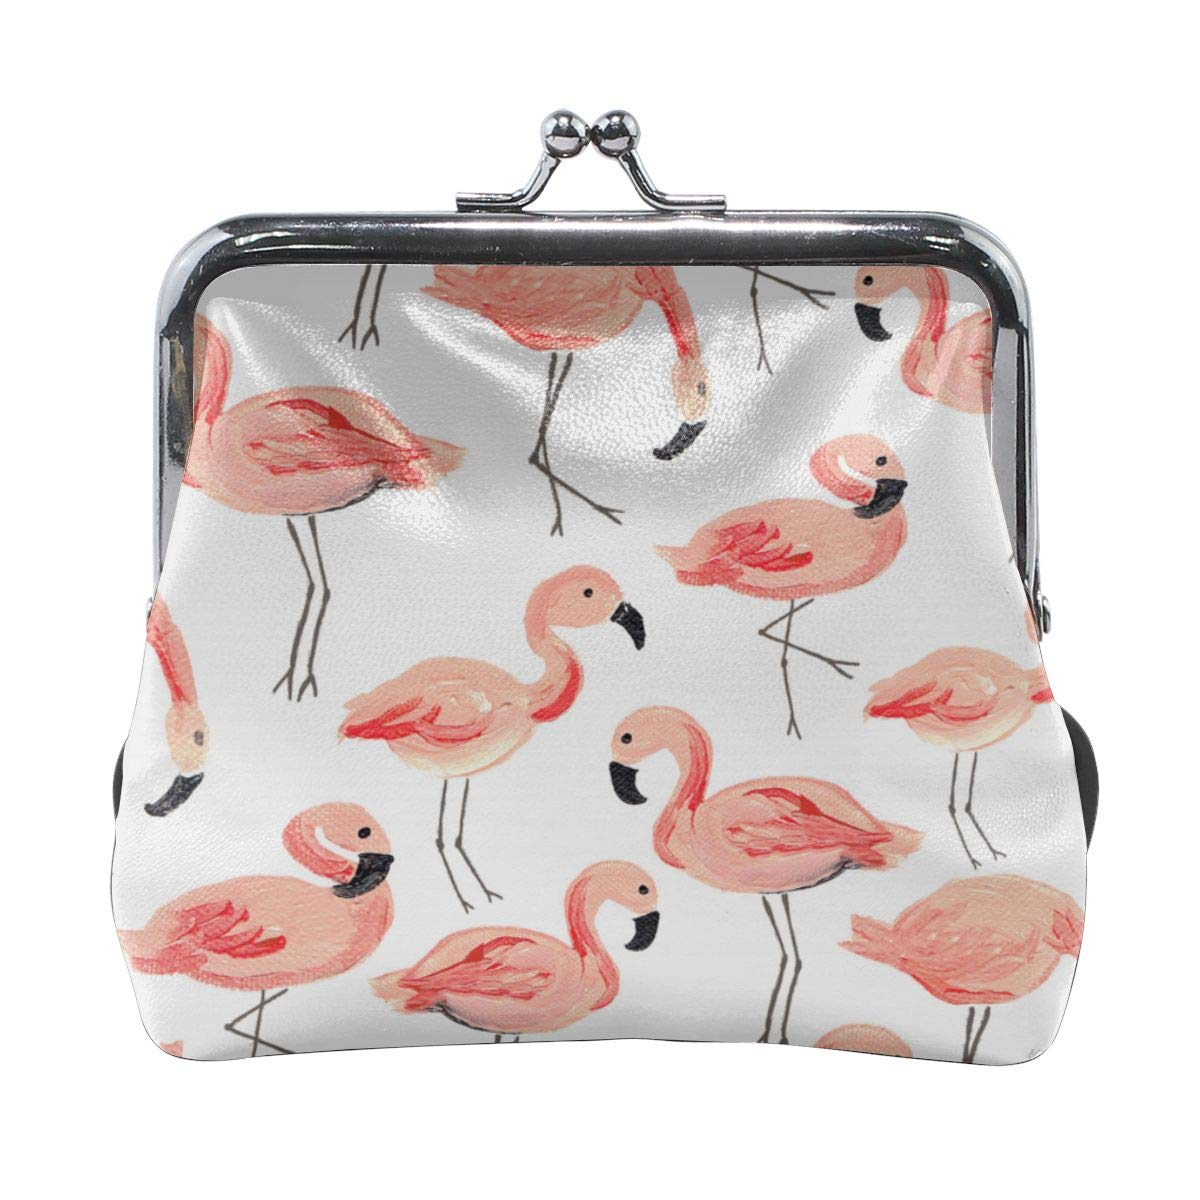 Exquisite Flamingos Key Buckle Coin Purse For Womens